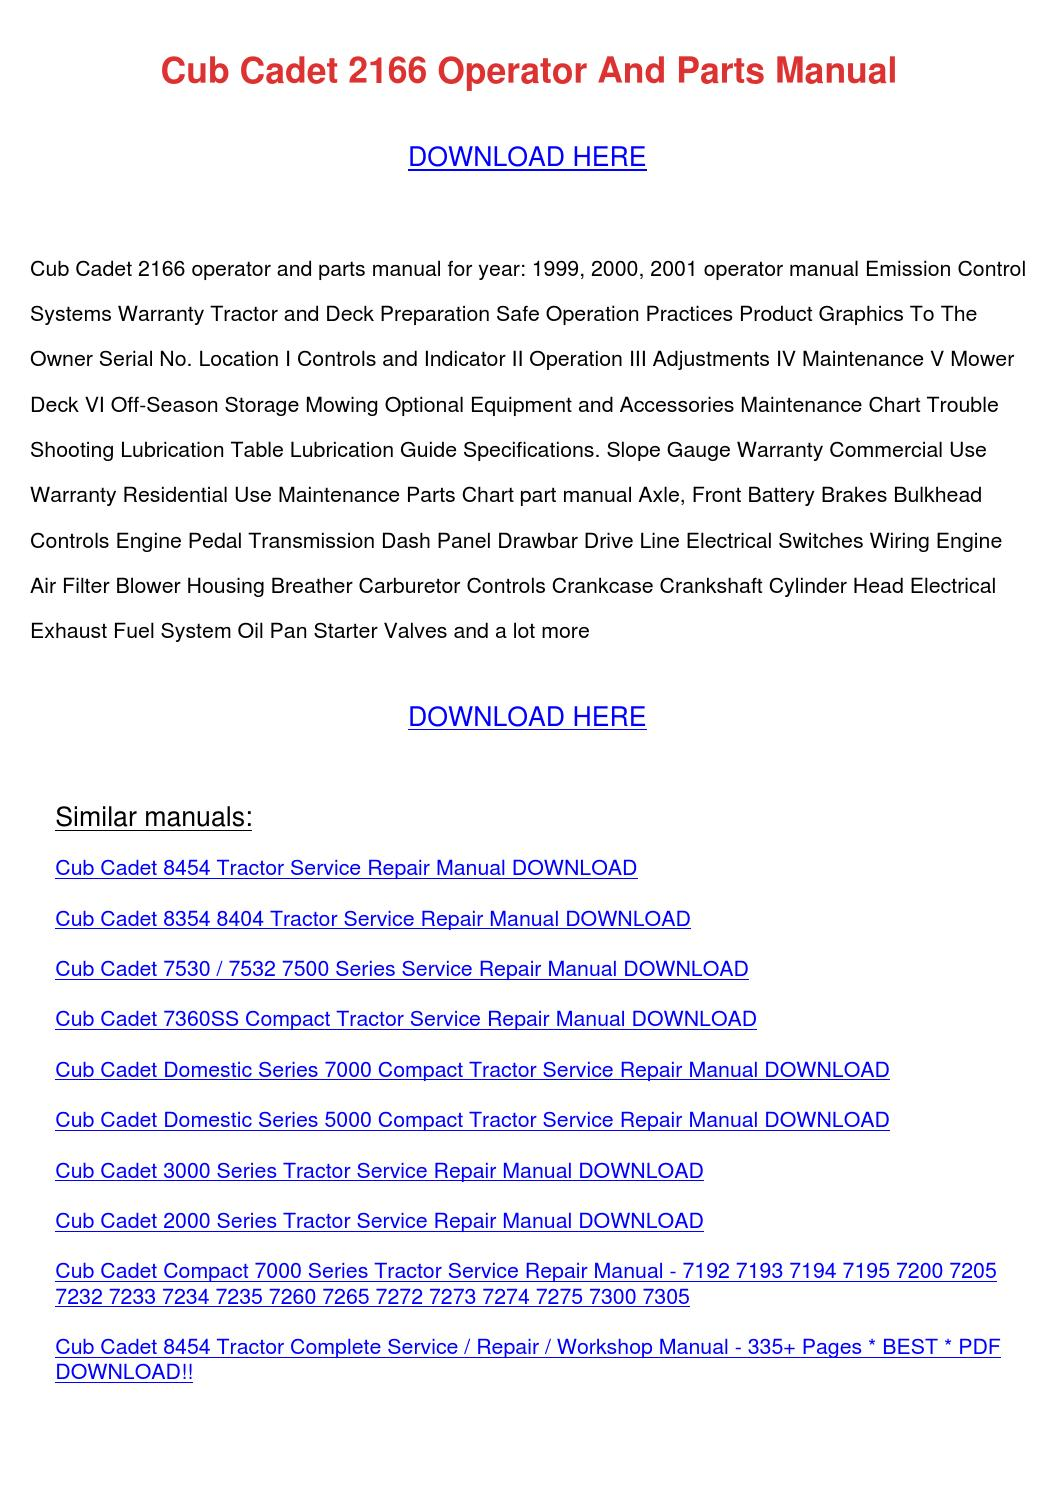 3206 cub cadet wiring diagram cub cadet 2166 operator and parts manual by franelizondo issuu  cub cadet 2166 operator and parts